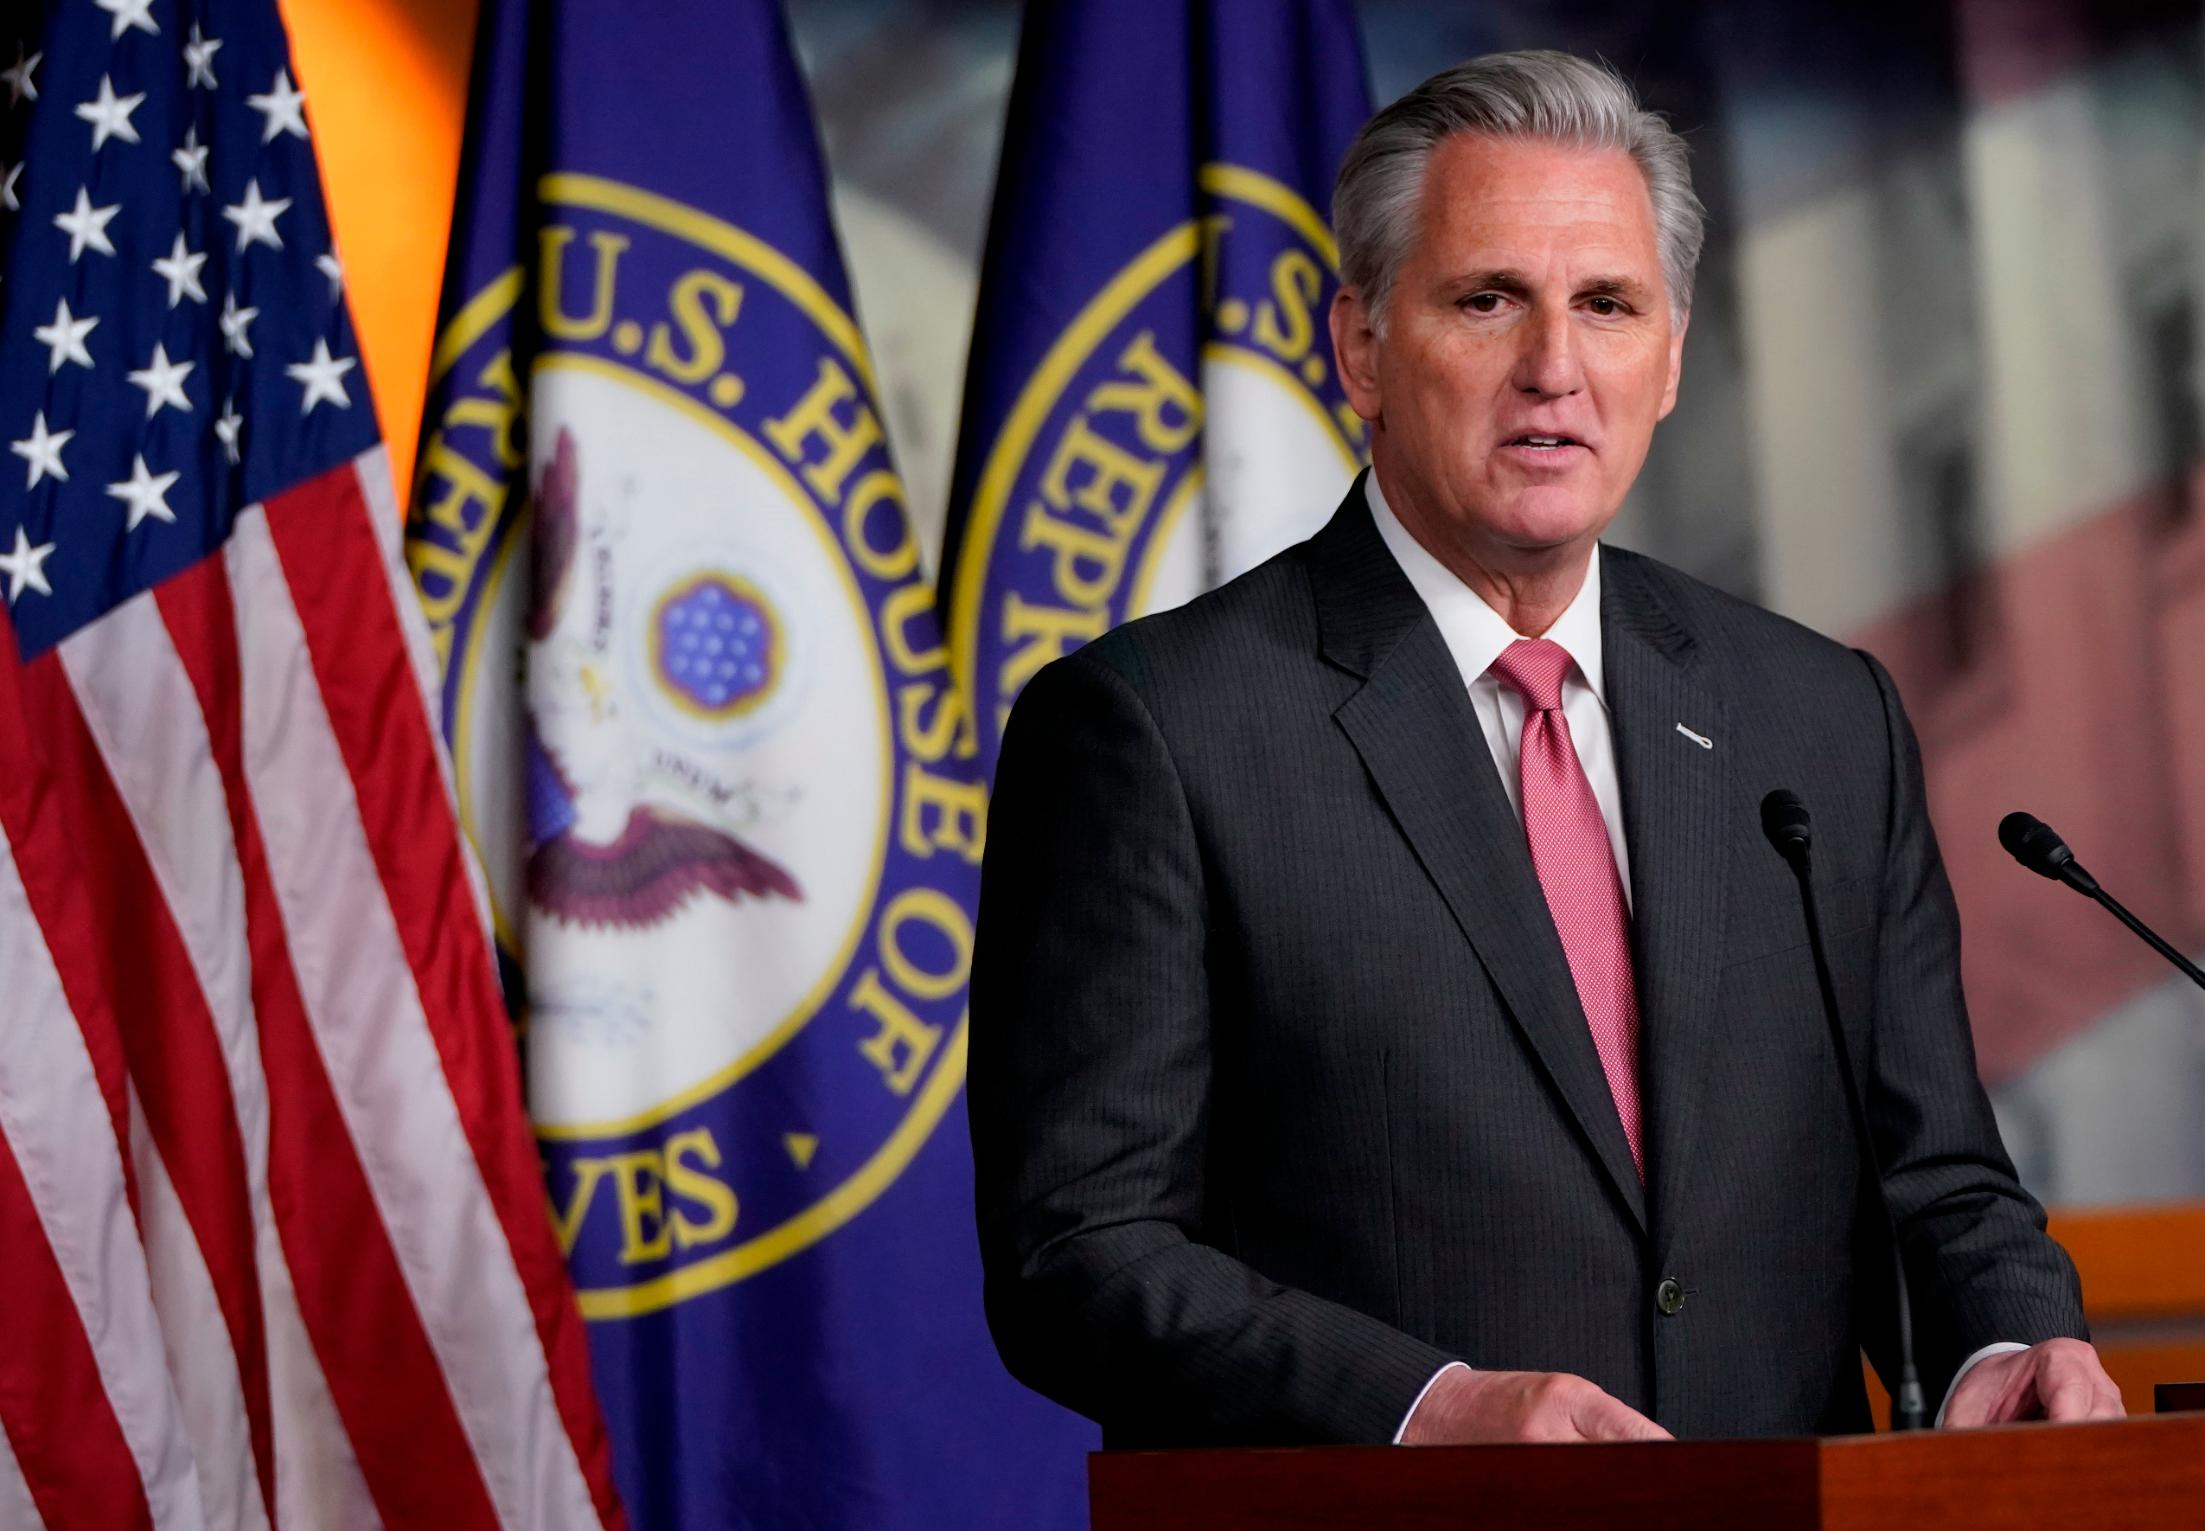 McCarthy won't support January 6 commission and sides with Republicans downplaying the insurrection